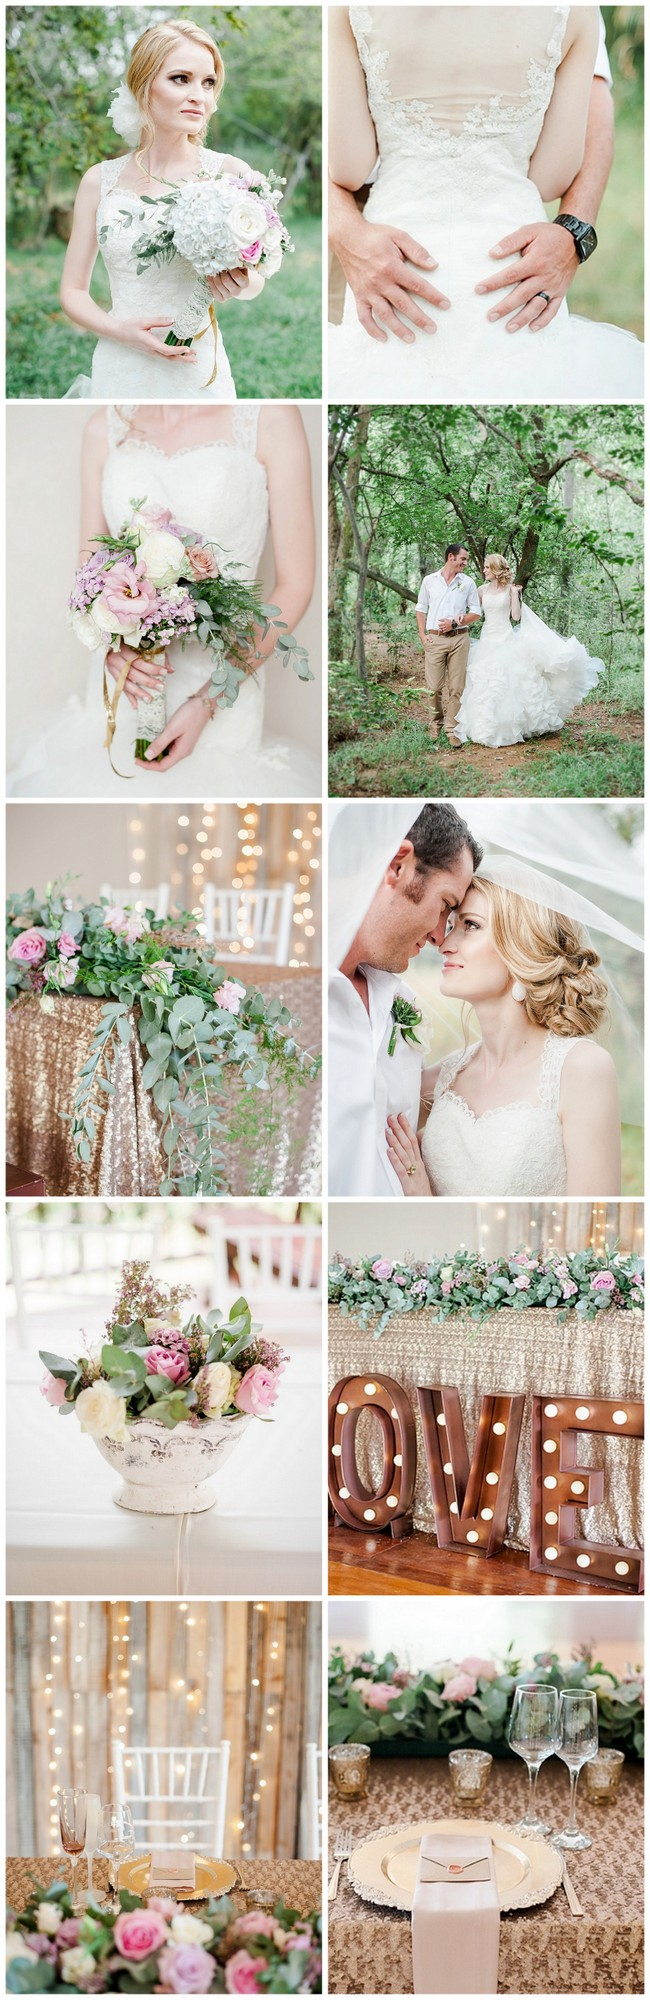 Totally Dreamy Pastel Gold Pretoria Wedding https://confettidaydreams.com/pastel-gold-pretoria-wedding/